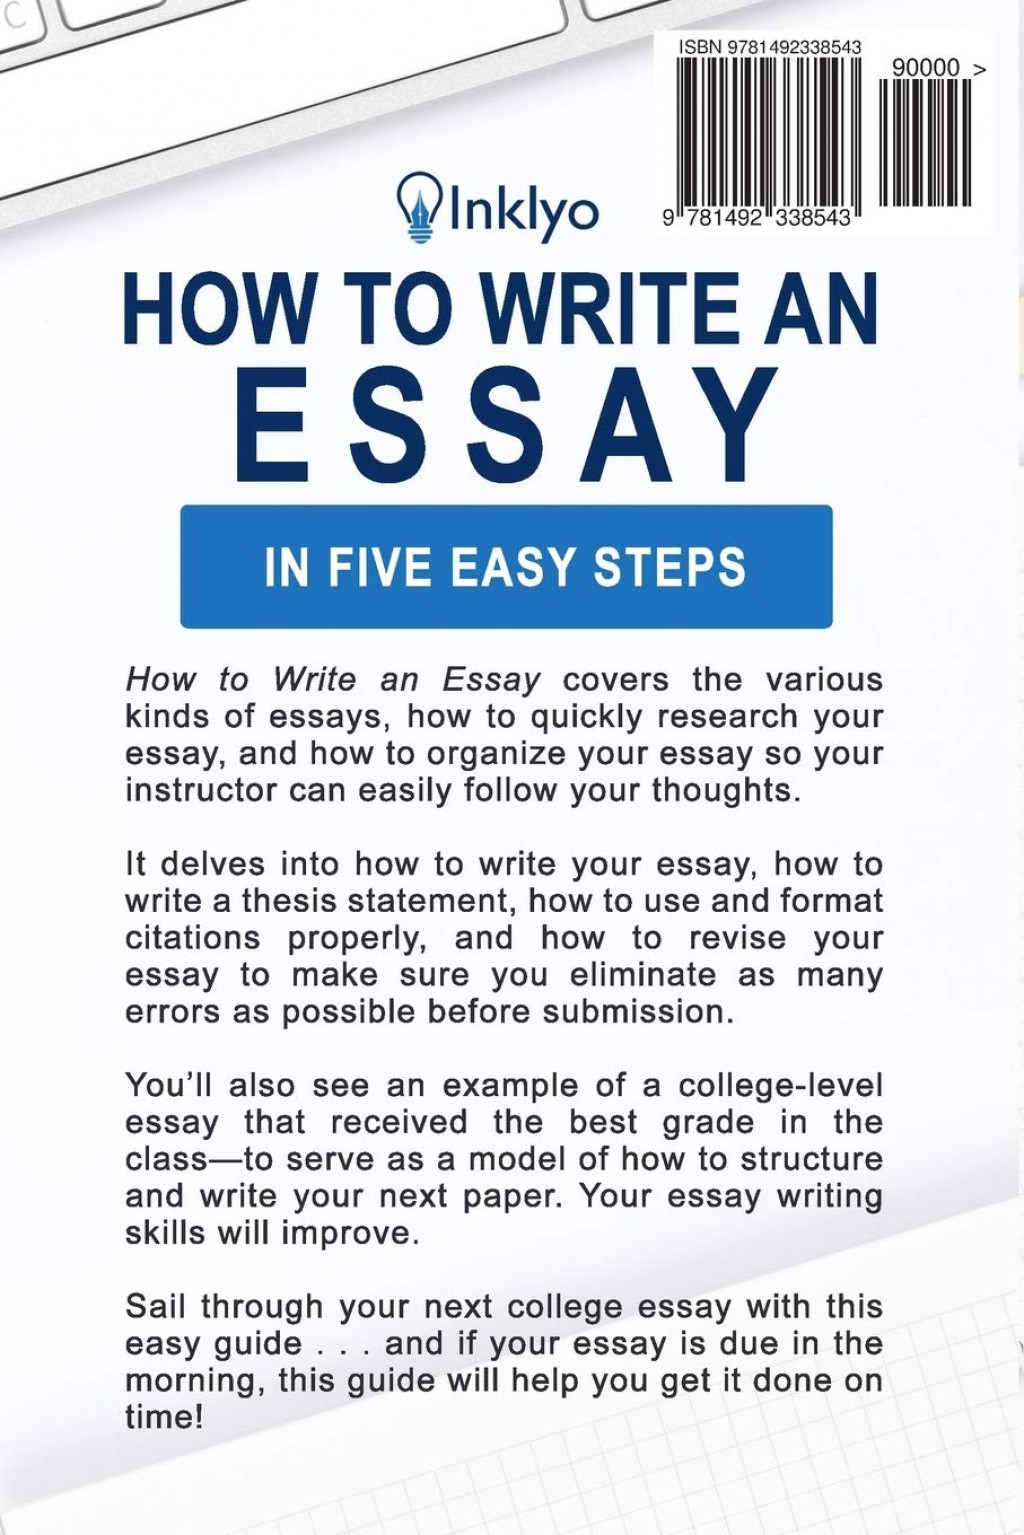 003 Write Essay Example Awful A An Win House Canada Practice Writing Online For Free Large